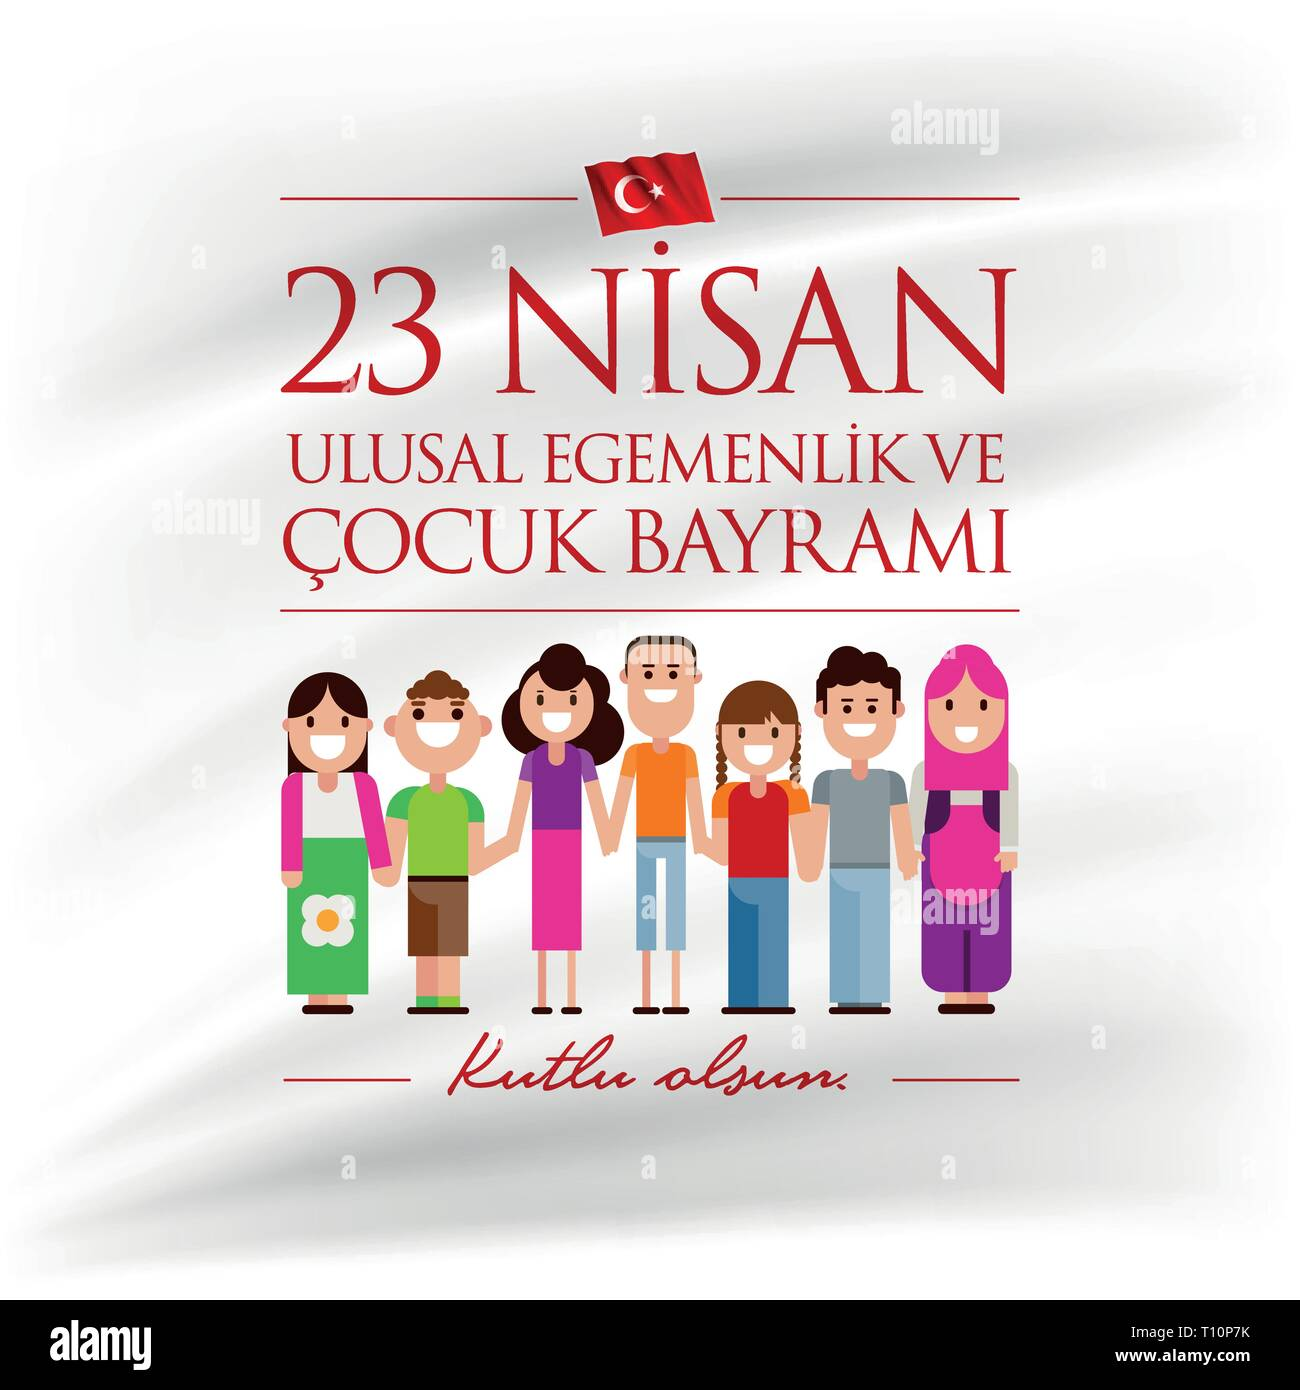 Vector illustration of the 23 Nisan Cocuk Bayrami, April 23 Turkish National Sovereignty and Children's Day, design template for the Turkish holiday. - Stock Vector